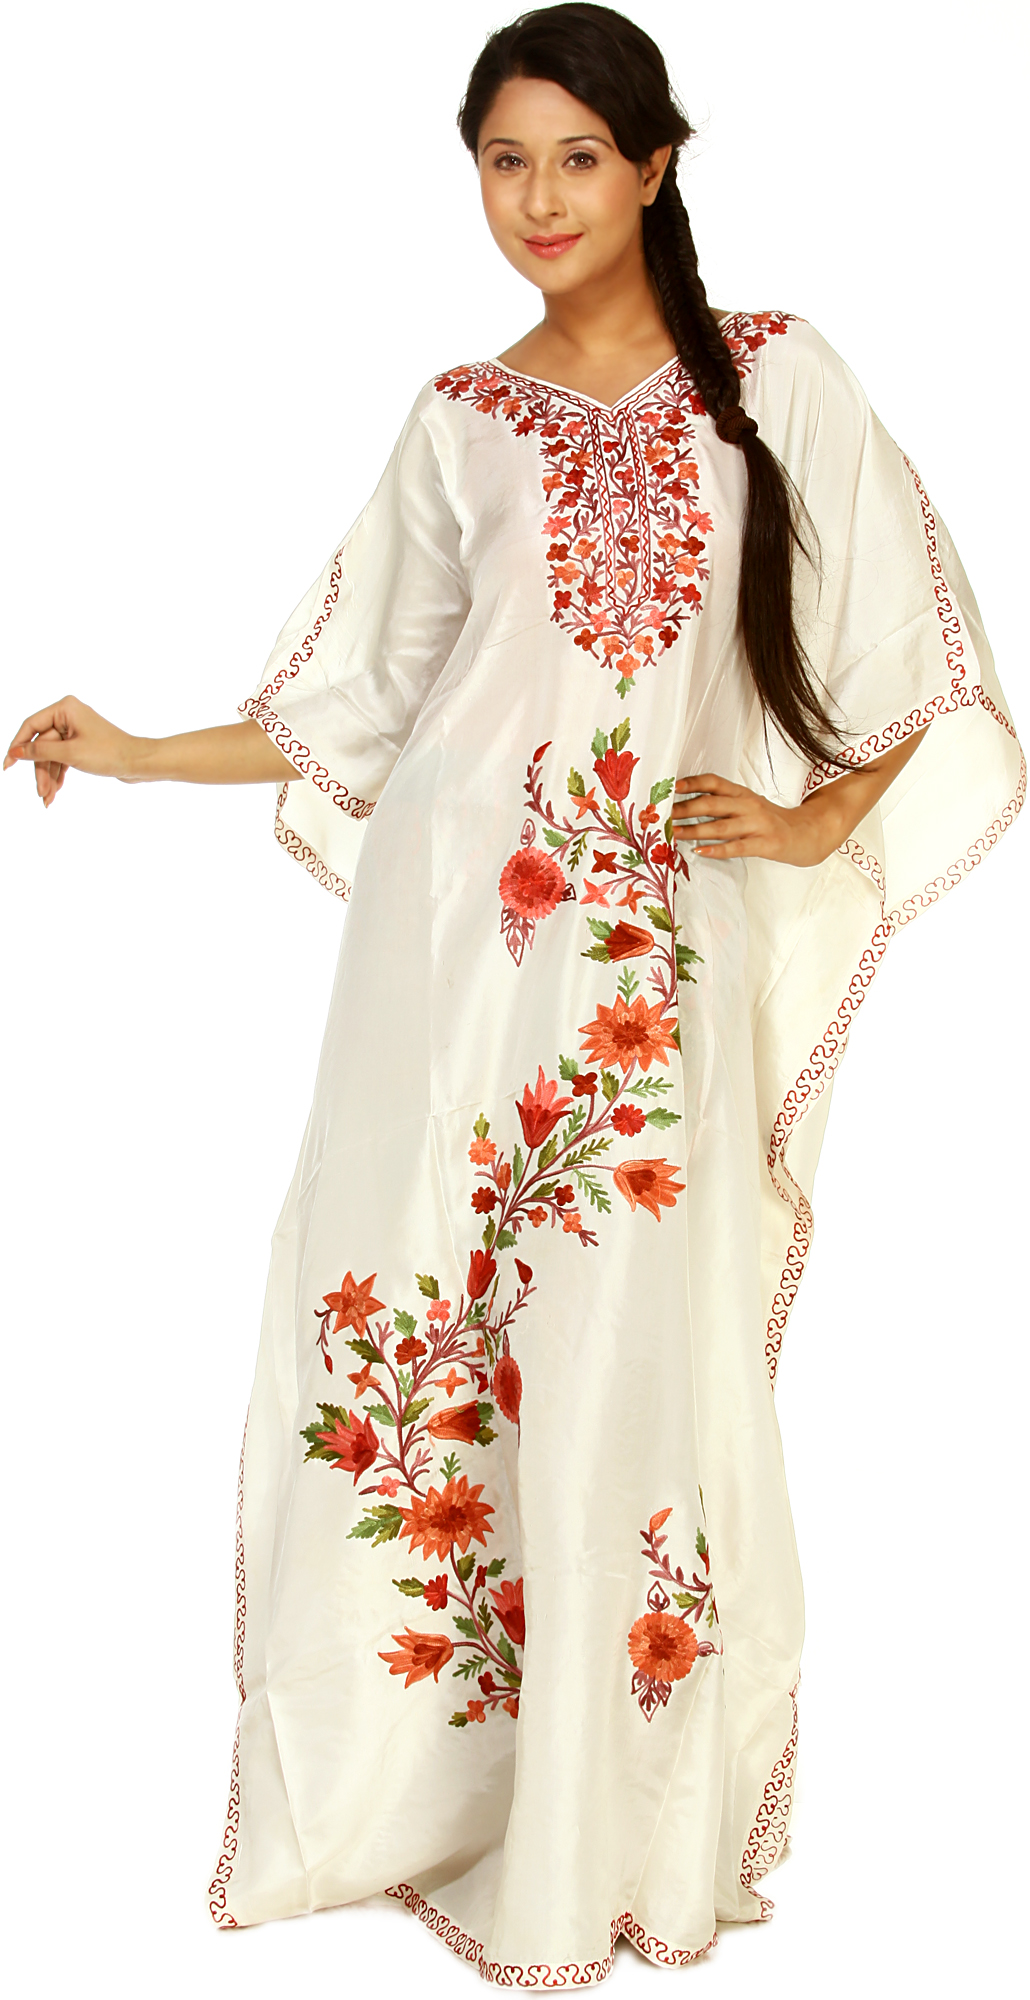 http://www.exoticindia.com/salwarkameez/ivory_kashmiri_kaftan_with_embroidered_flowers_stf70.jpg